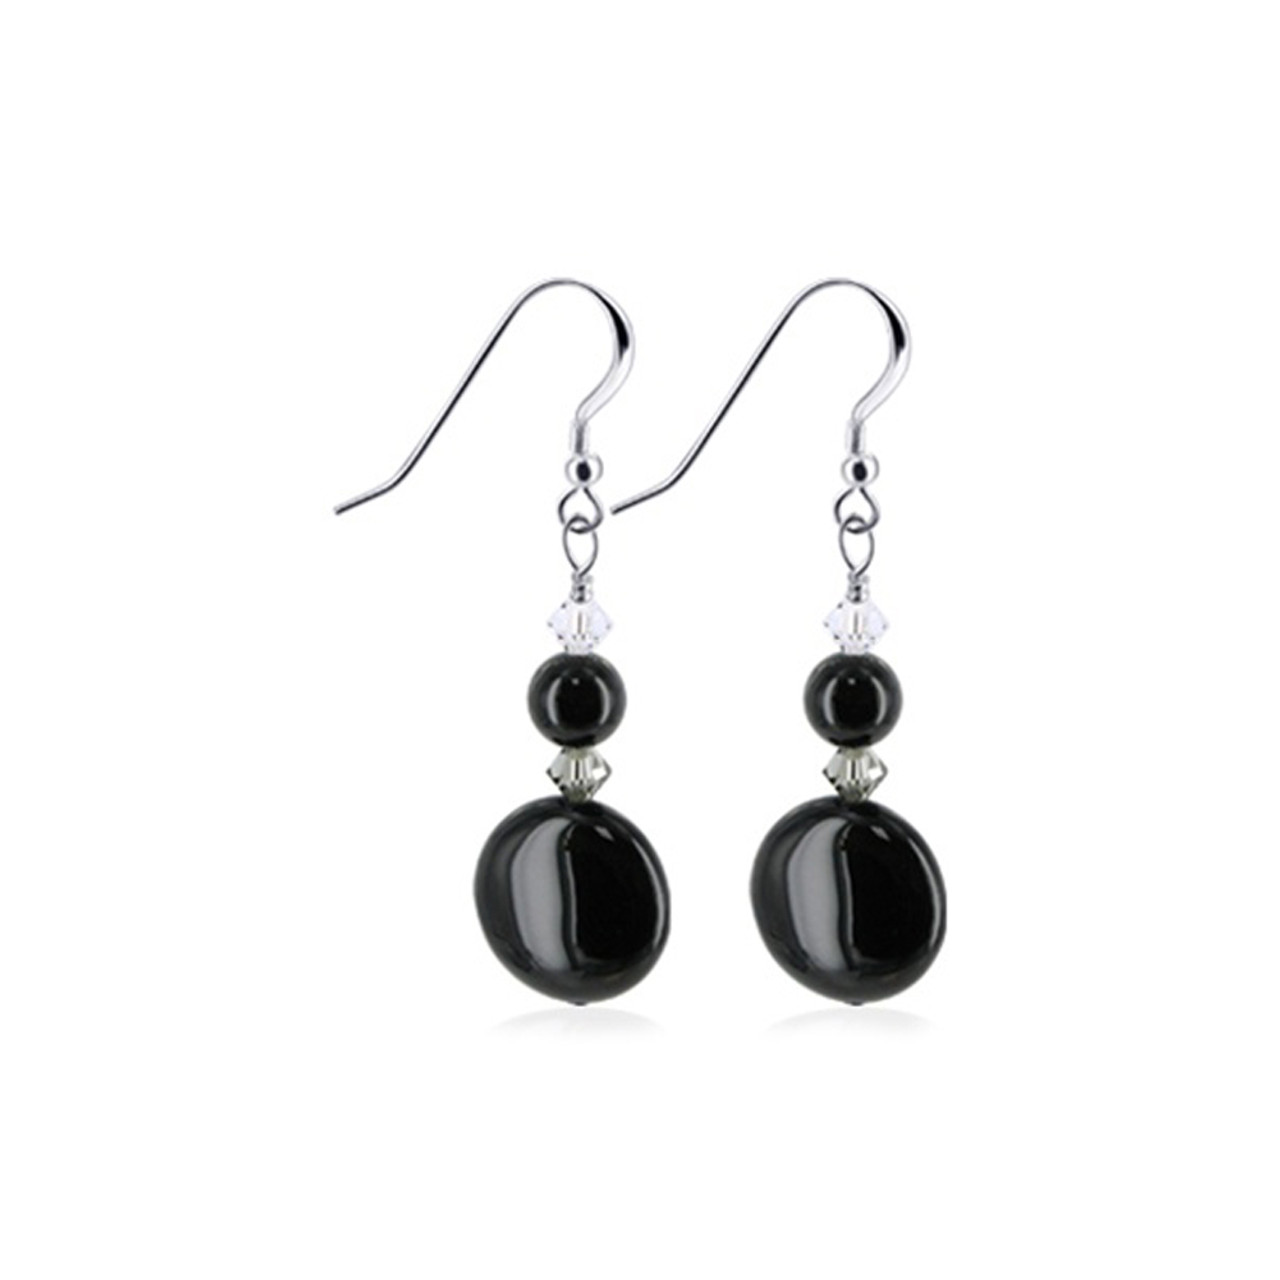 Black Onyx Swarovski Elements Crystal 1.75 inch Sterling Silver Drop Earrings